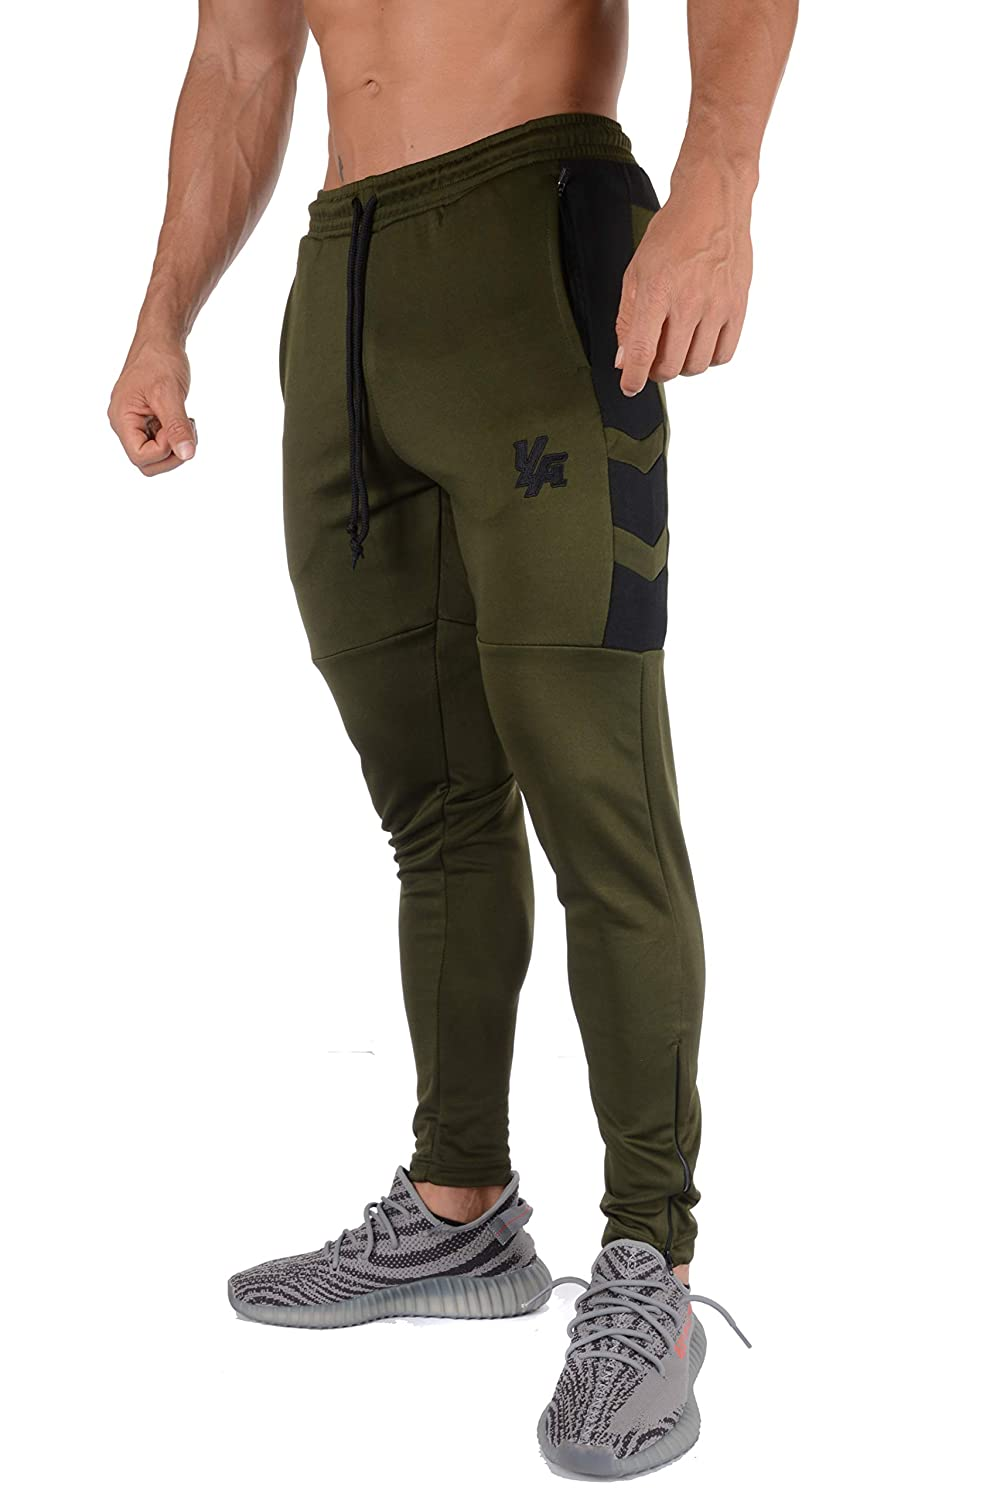 fbf32b4a58e YoungLA Track Pants for Men Workout Athletic Gym Joggers Lightweight  Training Sweatpants Tapered Fit 205  Amazon.ca  Clothing   Accessories